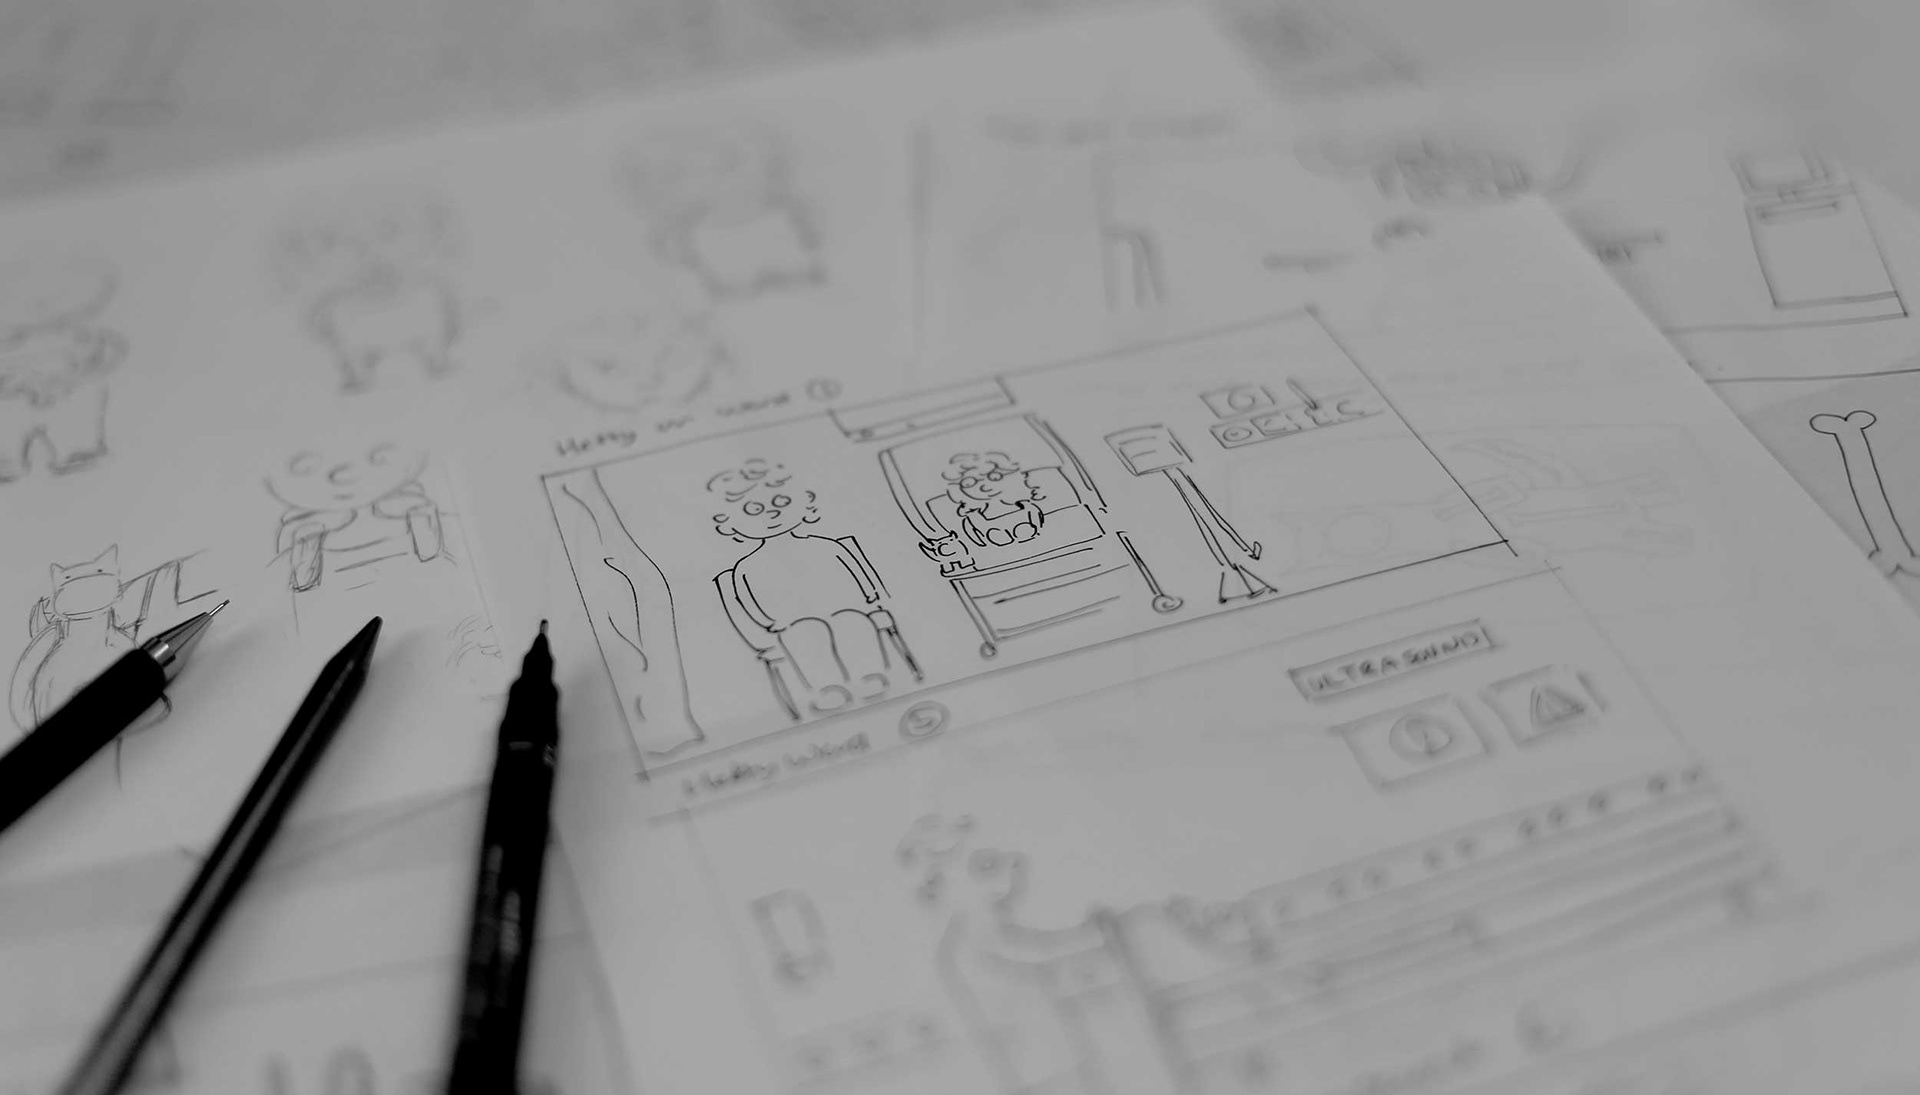 How it all began... concepting the app with pen and paper